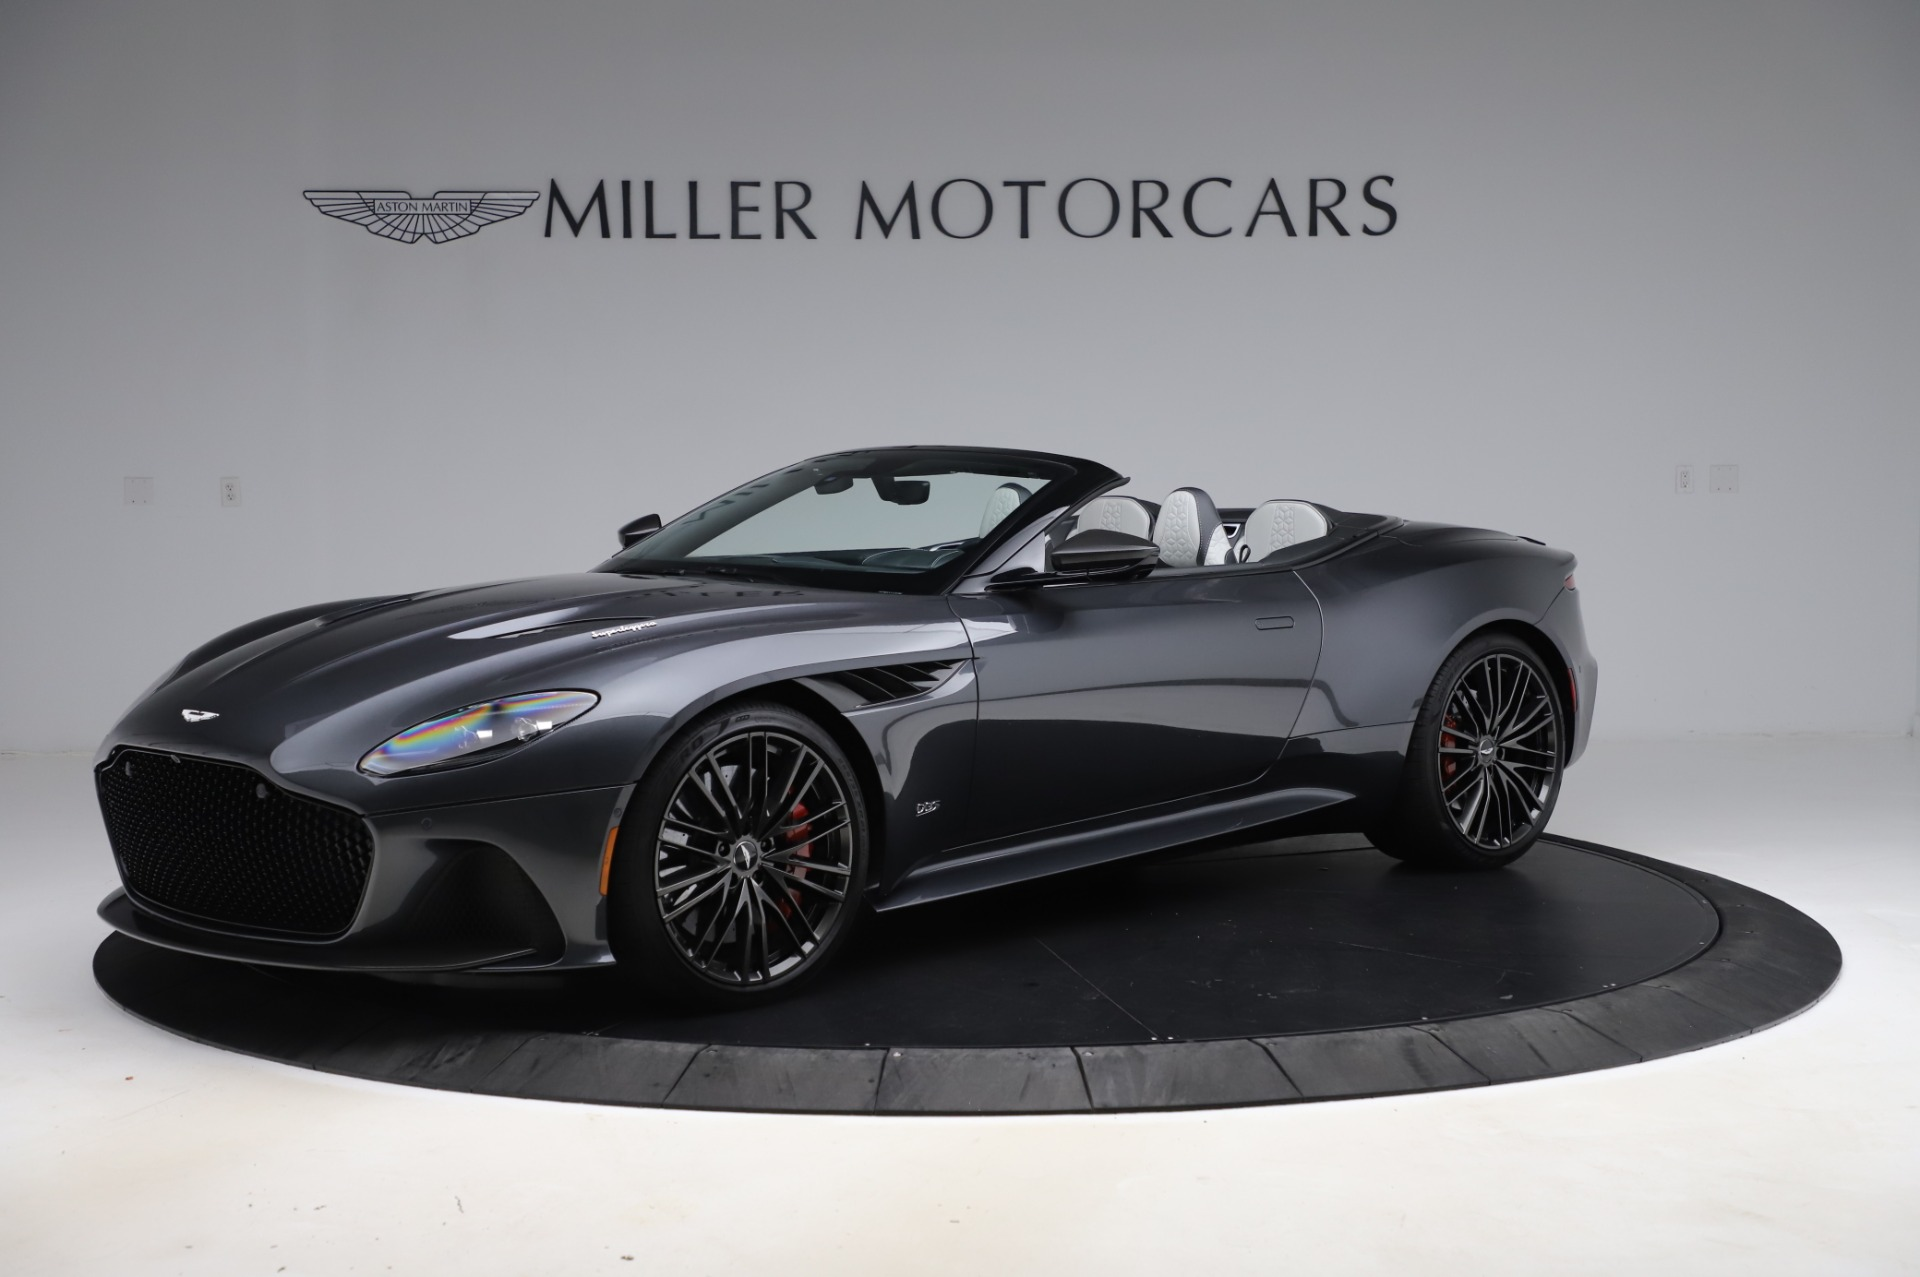 Used 2020 Aston Martin DBS Superleggera Volante for sale Sold at Rolls-Royce Motor Cars Greenwich in Greenwich CT 06830 1